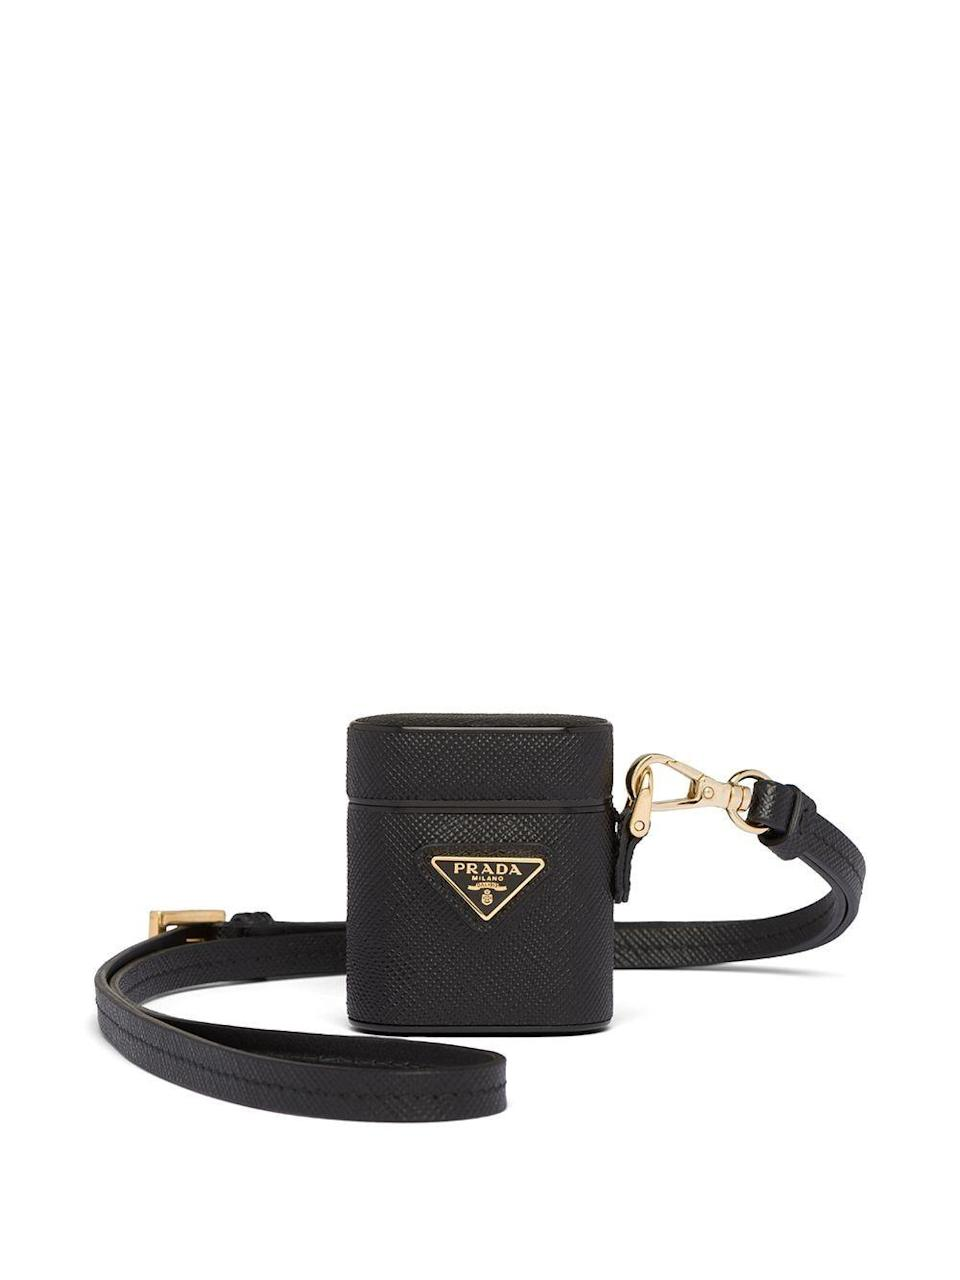 """<p><strong>Prada</strong></p><p>farfetch.com</p><p><strong>$460.00</strong></p><p><a href=""""https://go.redirectingat.com?id=74968X1596630&url=https%3A%2F%2Fwww.farfetch.com%2Fshopping%2Fwomen%2Fprada-logo-plaque-airpods-case-item-15093281.aspx&sref=https%3A%2F%2Fwww.harpersbazaar.com%2Ffashion%2Fg32937637%2F30th-birthday-gift-ideas%2F"""" rel=""""nofollow noopener"""" target=""""_blank"""" data-ylk=""""slk:Shop Now"""" class=""""link rapid-noclick-resp"""">Shop Now</a></p><p>Elevate her AirPods with a chic case that she can accessorize as a necklace for on-the-go activities. </p>"""